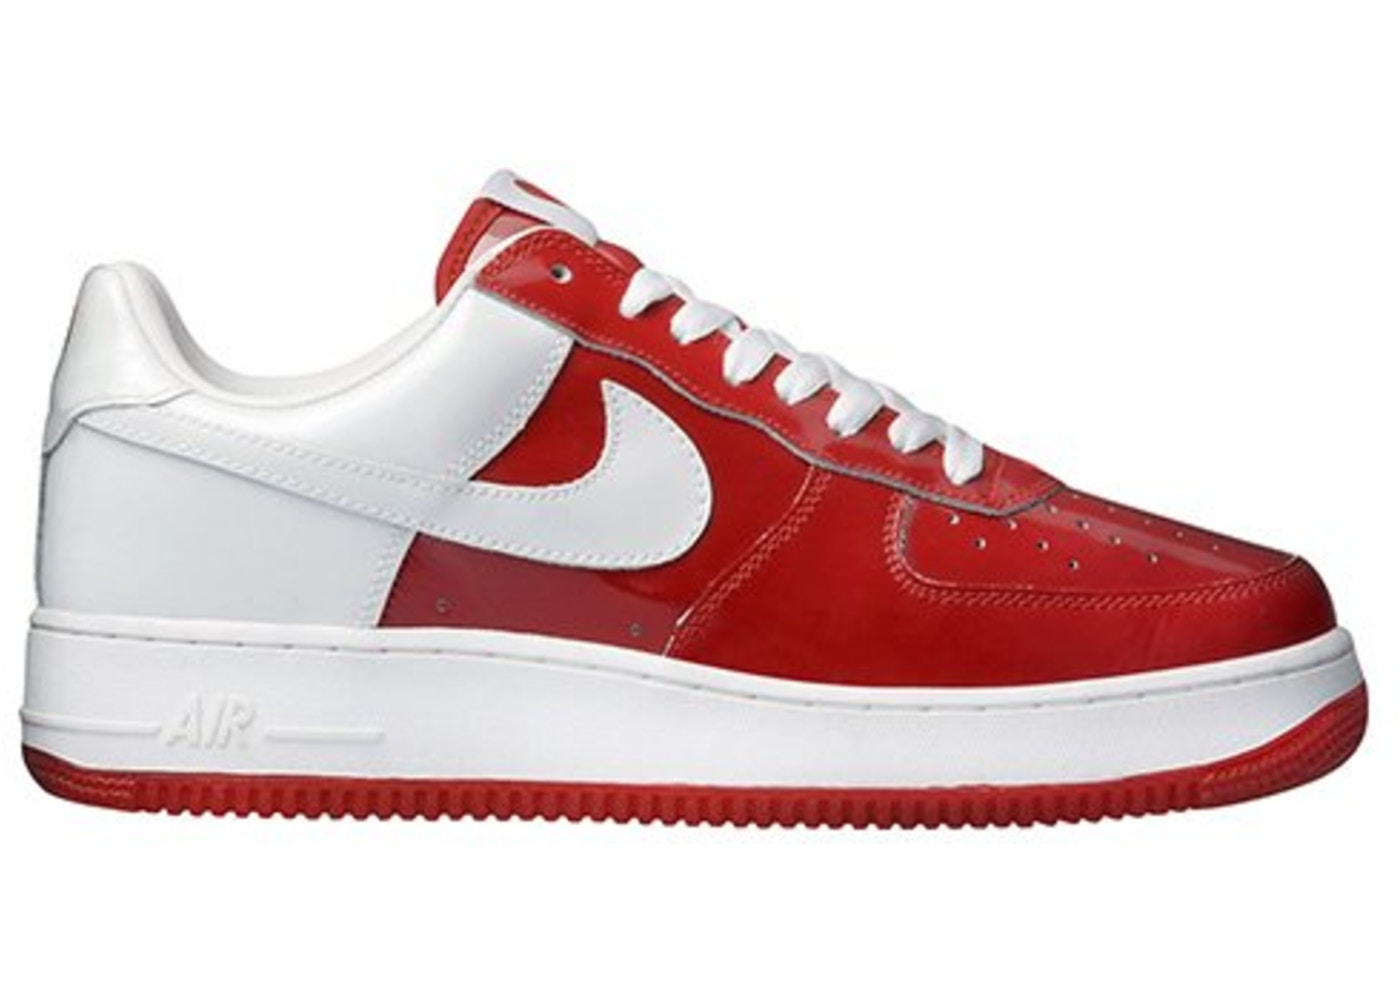 Air Force 1 Low Valentines Day 2006 312945 111